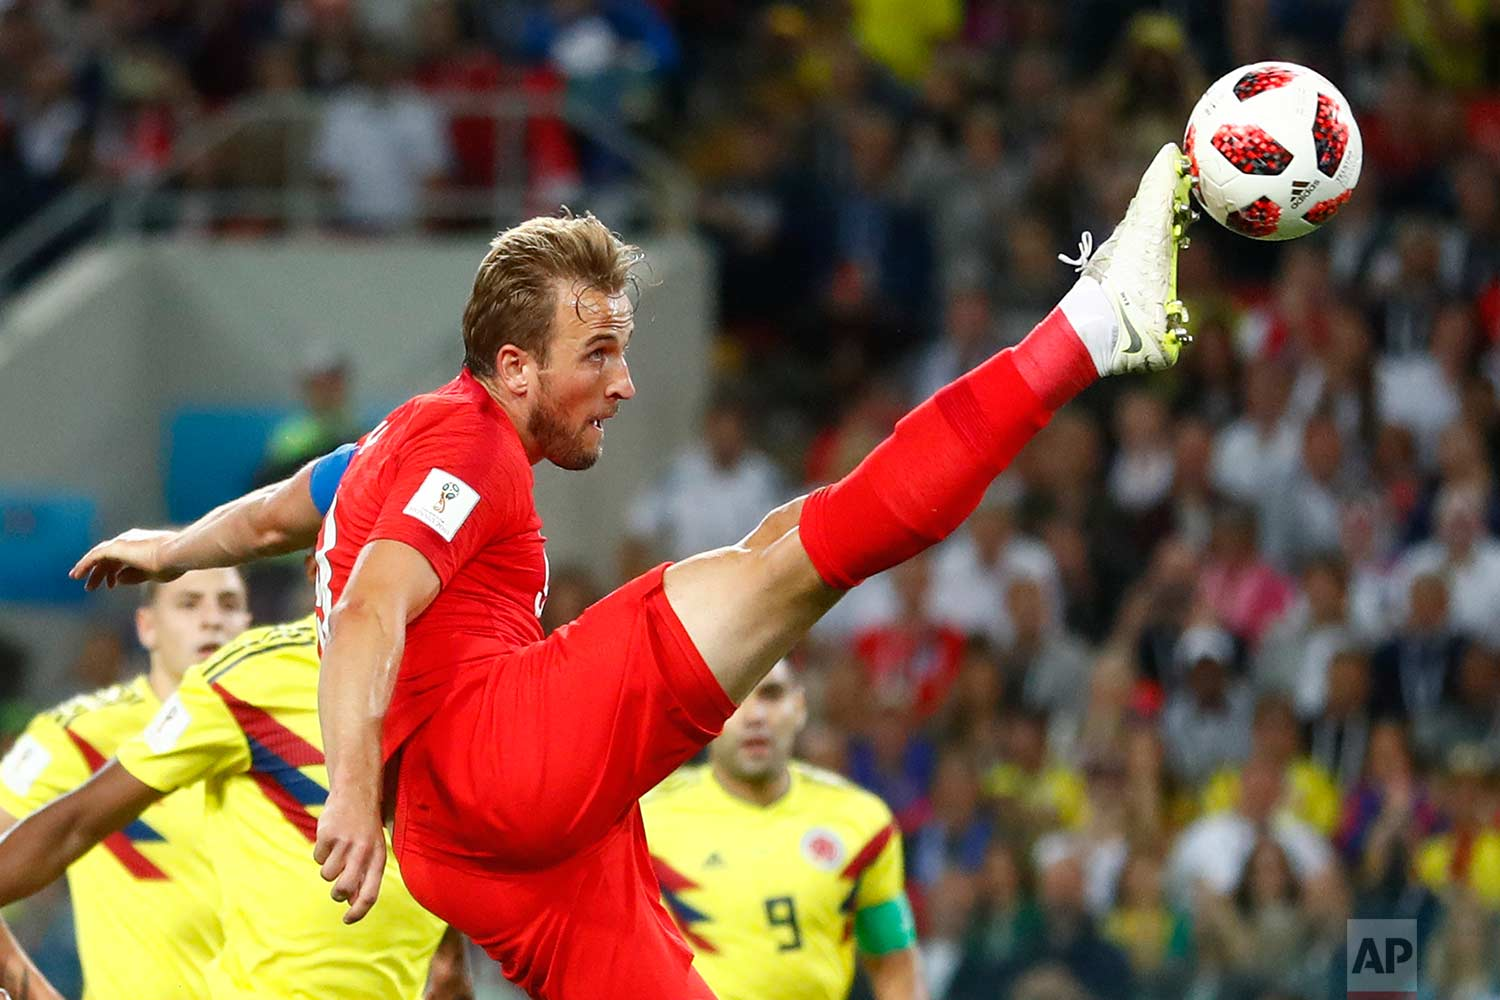 England's Harry Kane tries to control the ball during the round of 16 match between Colombia and England at the 2018 soccer World Cup in the Spartak Stadium, in Moscow, Russia, Tuesday, July 3, 2018. (AP Photo/Matthias Schrader)